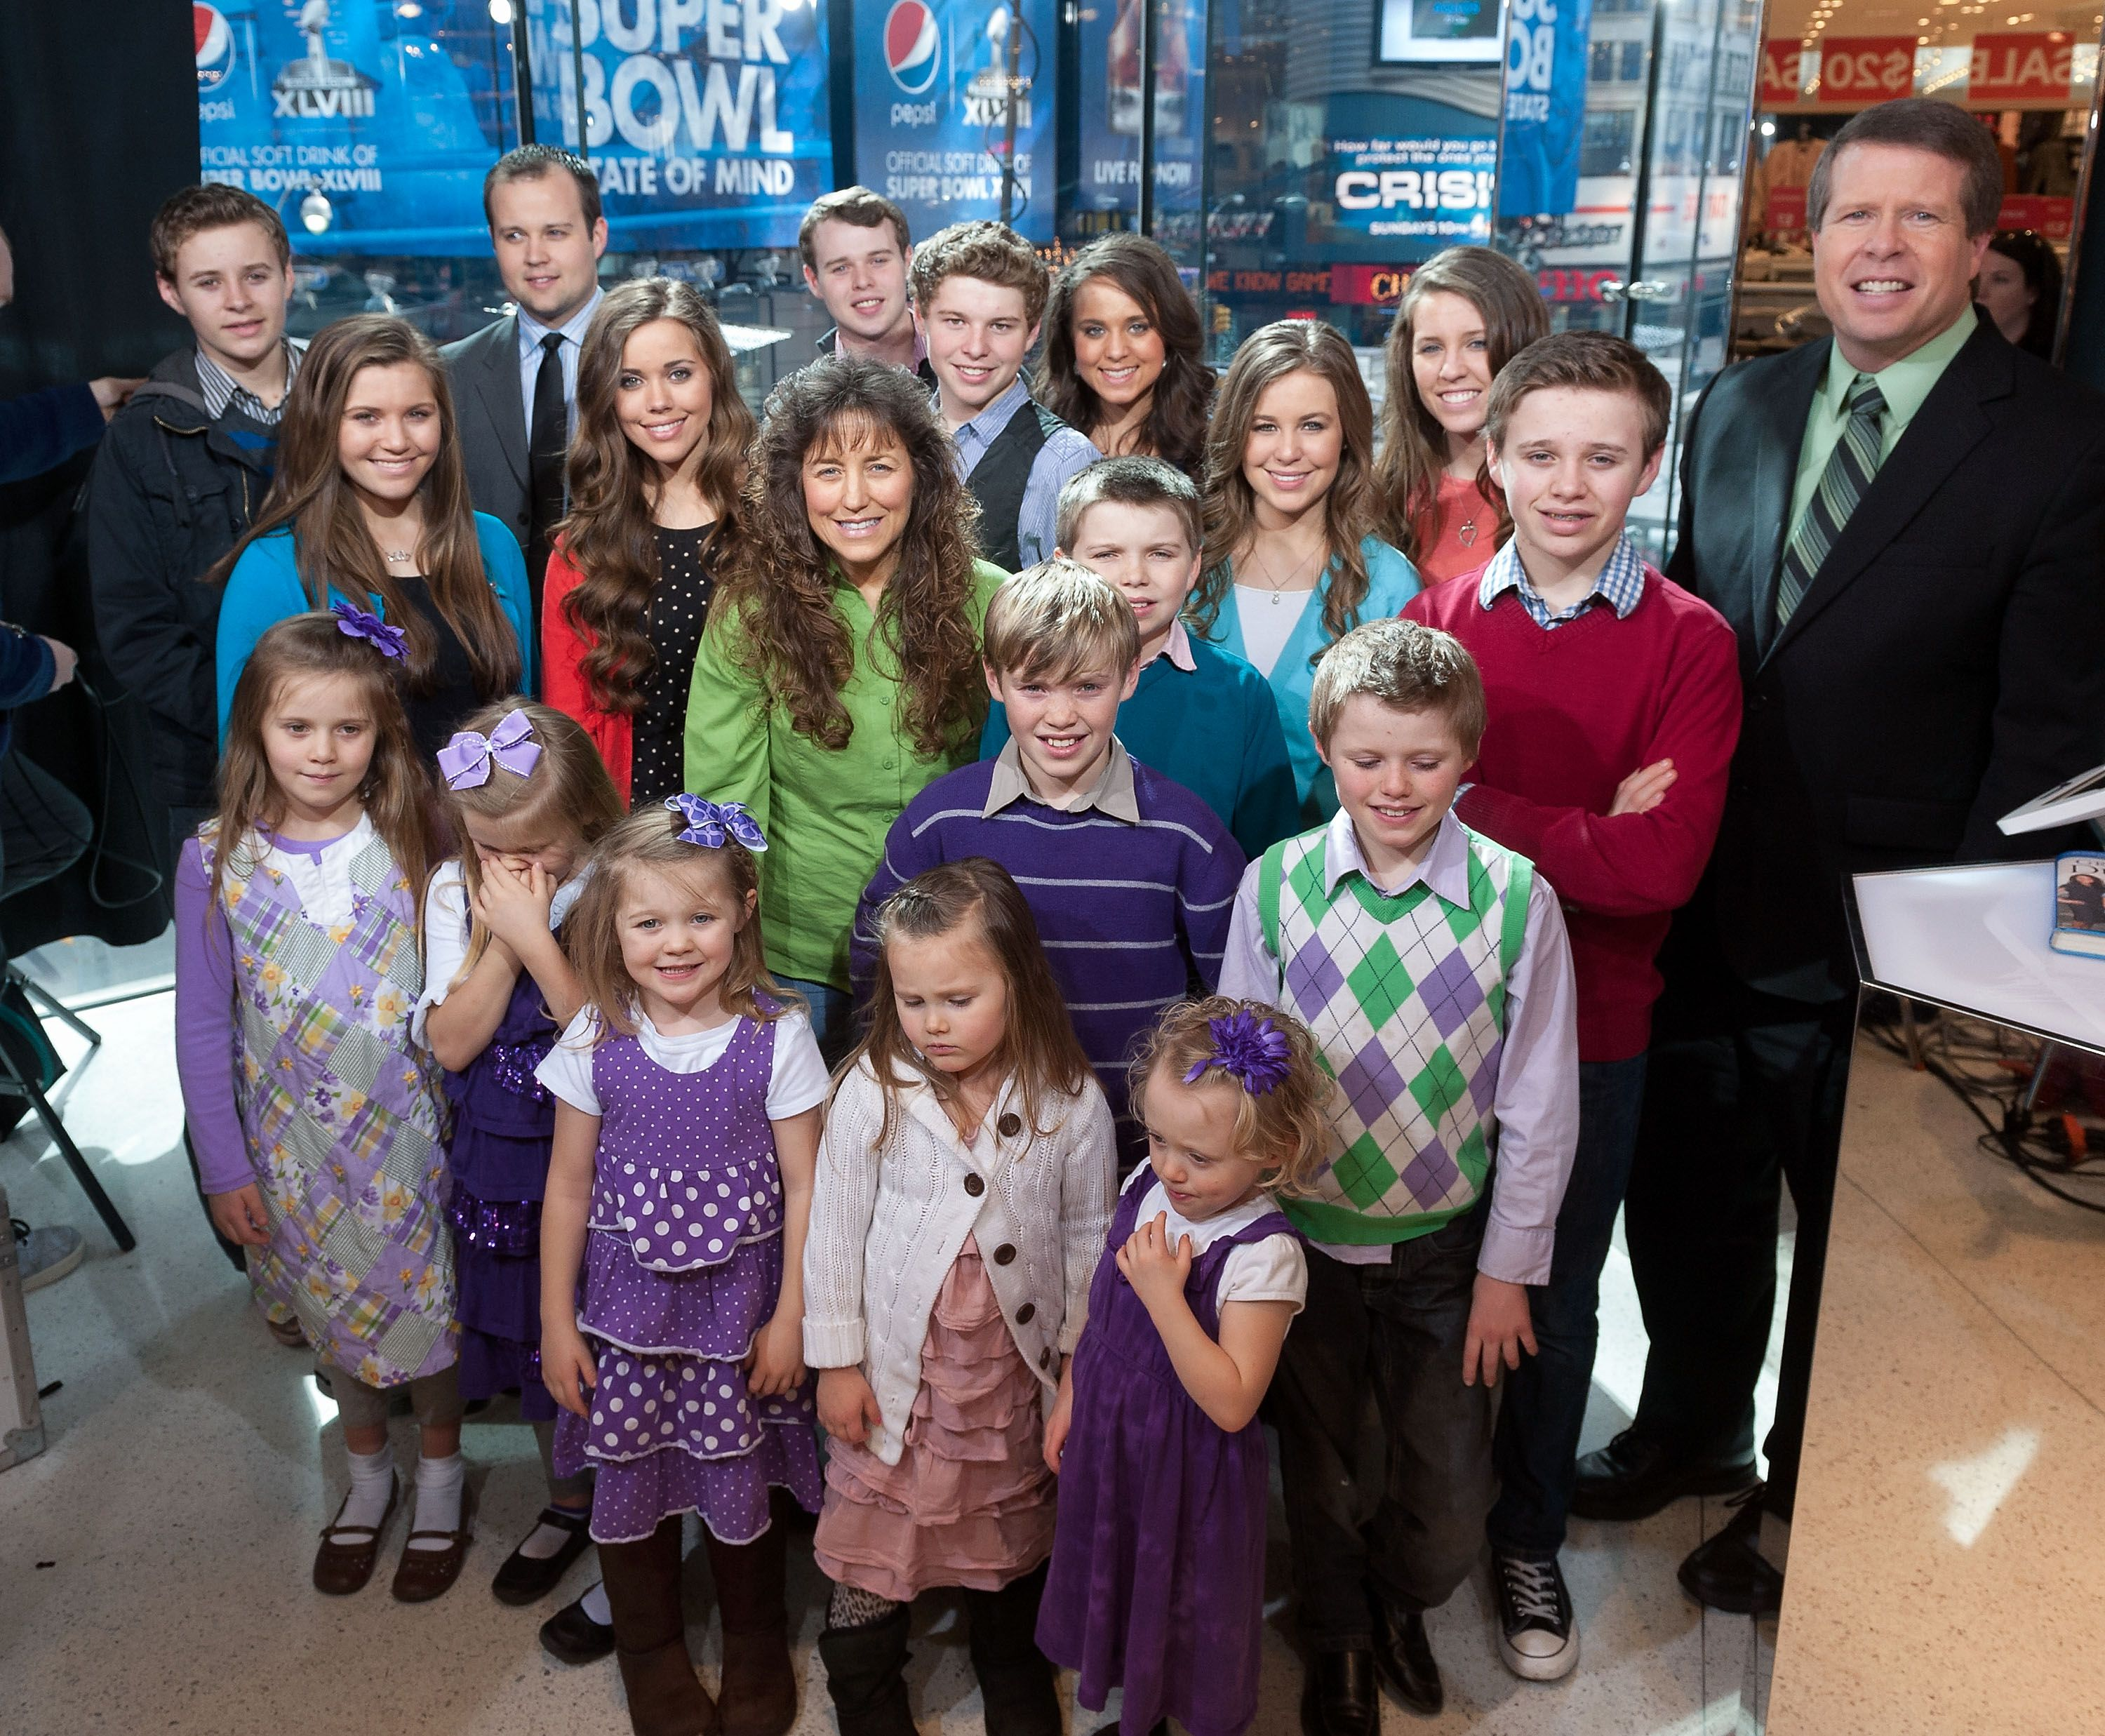 Jim Bob and Michelle Duggar share an amazing family photo with their 19 kids and they all look so cute.